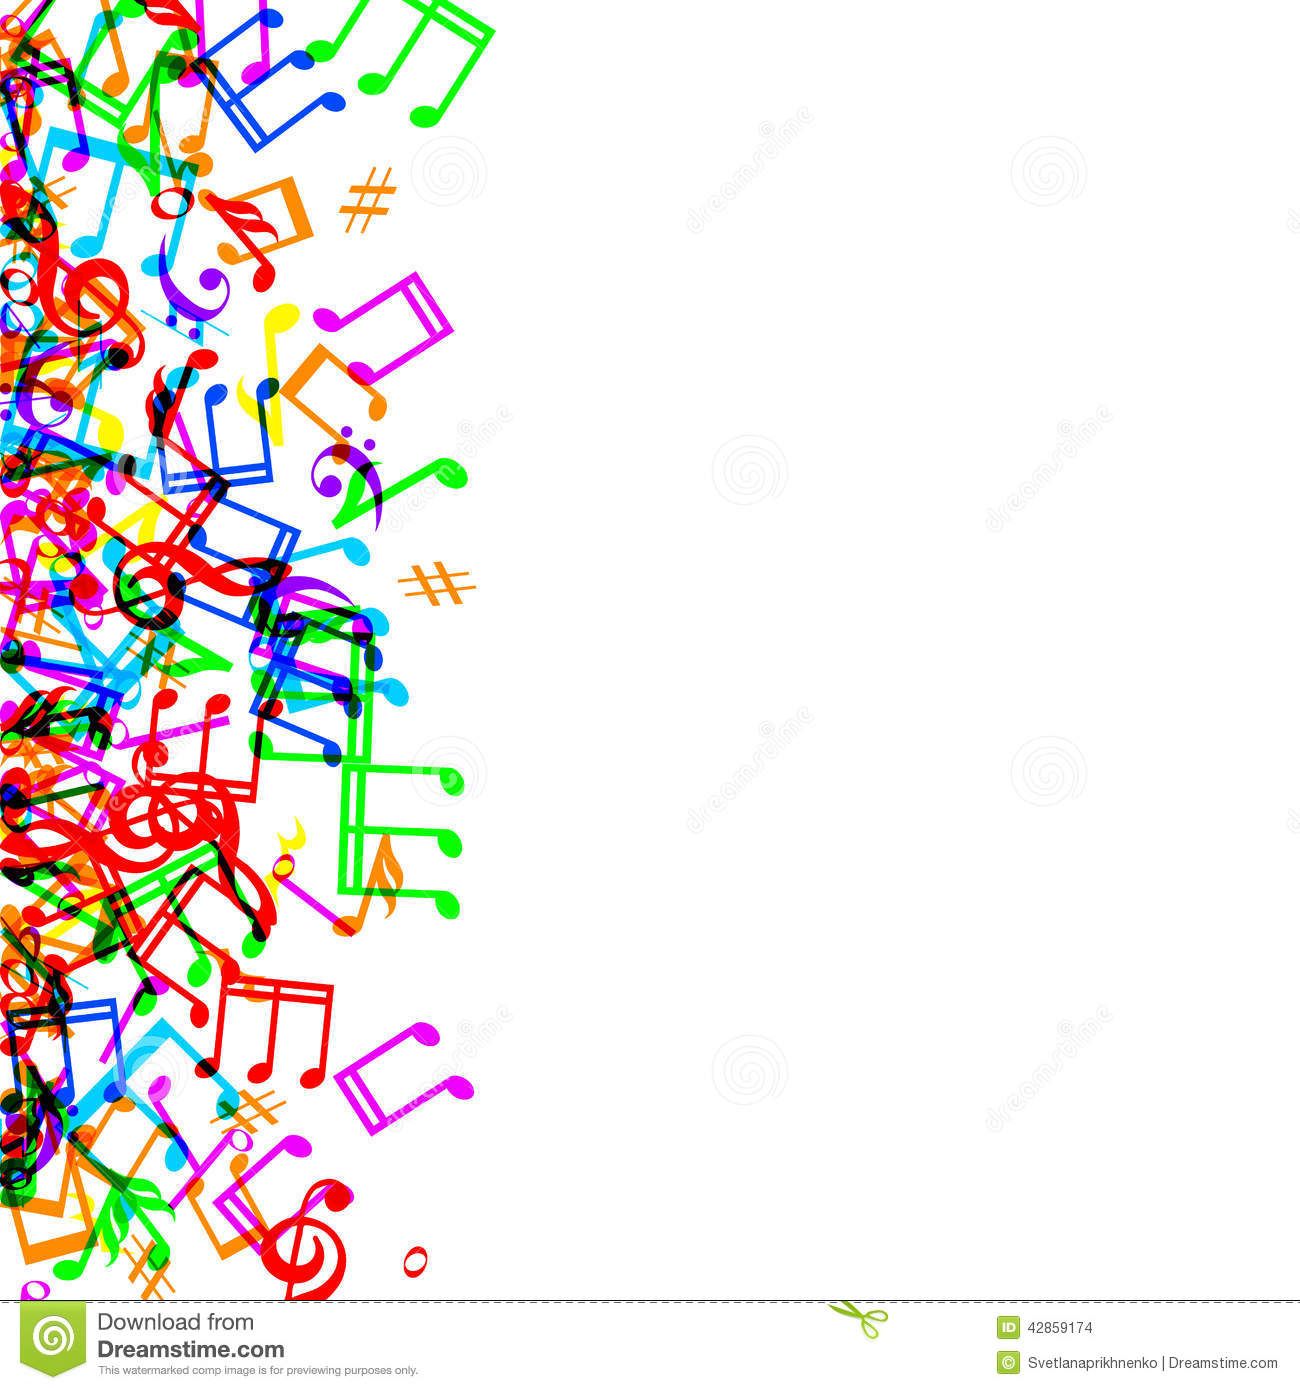 Colorful Music Note Border Clip Art.